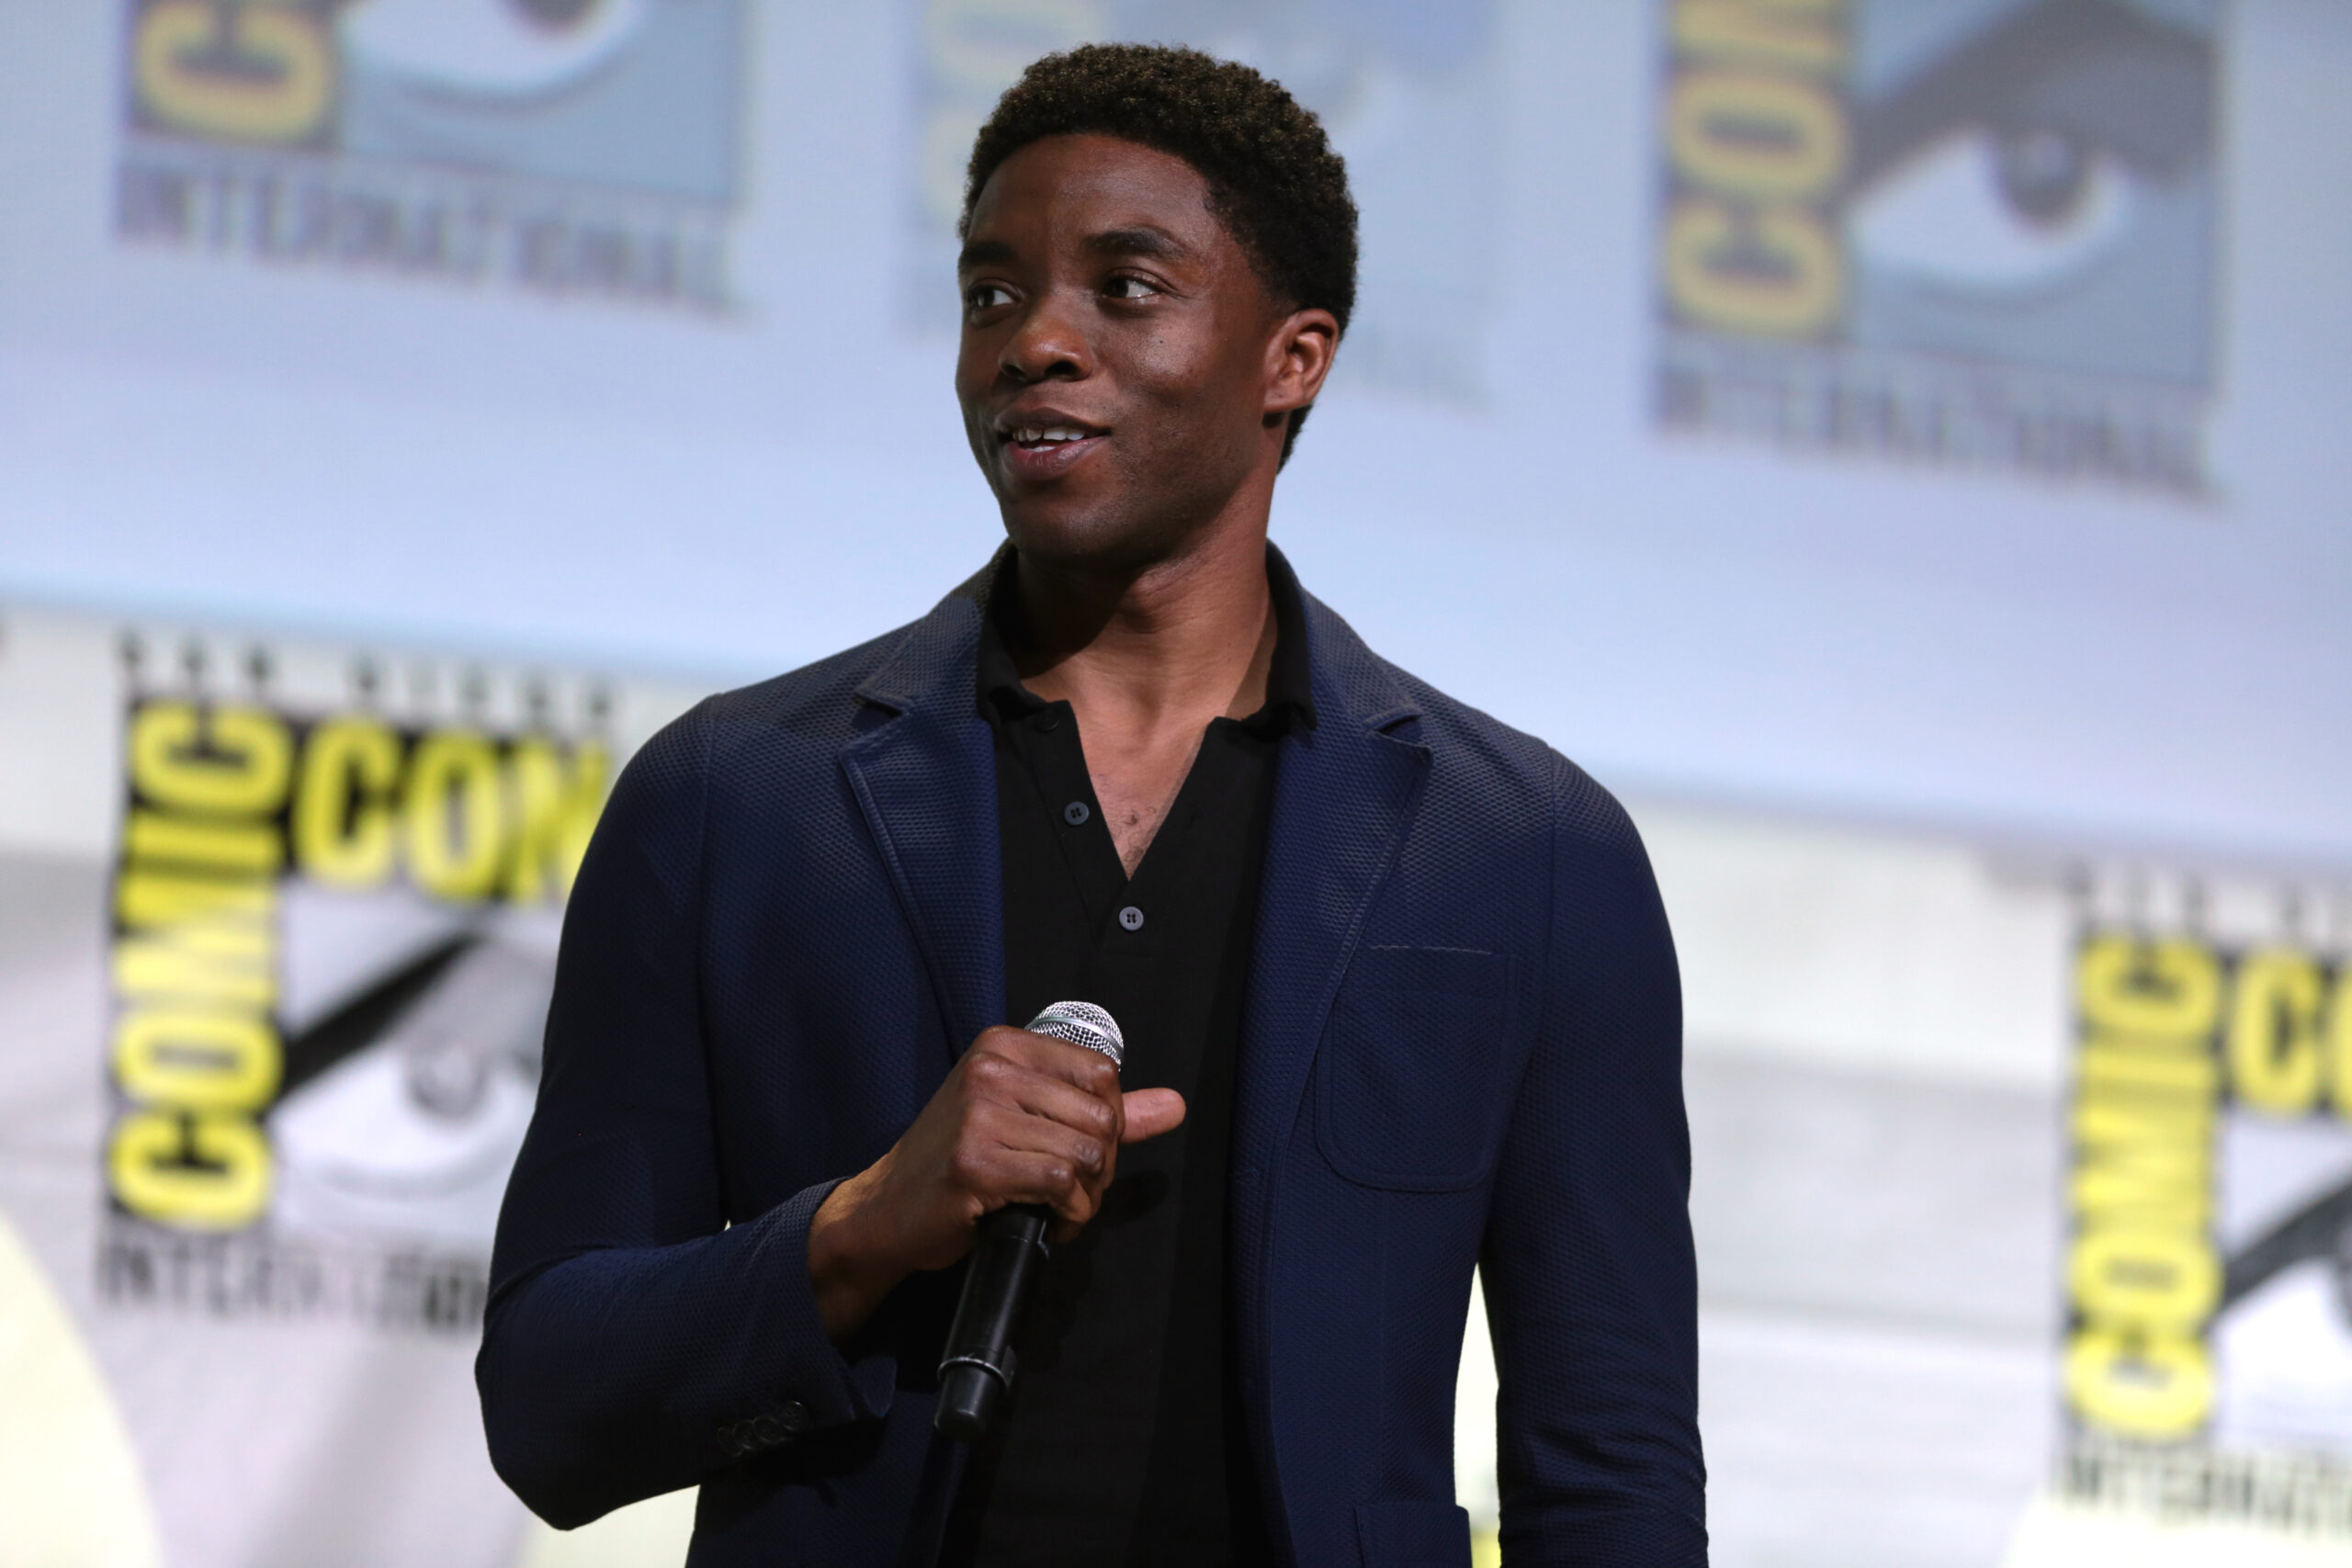 Fine Arts Petition to Honor Chadwick Boseman Gains Traction Both Online and Off